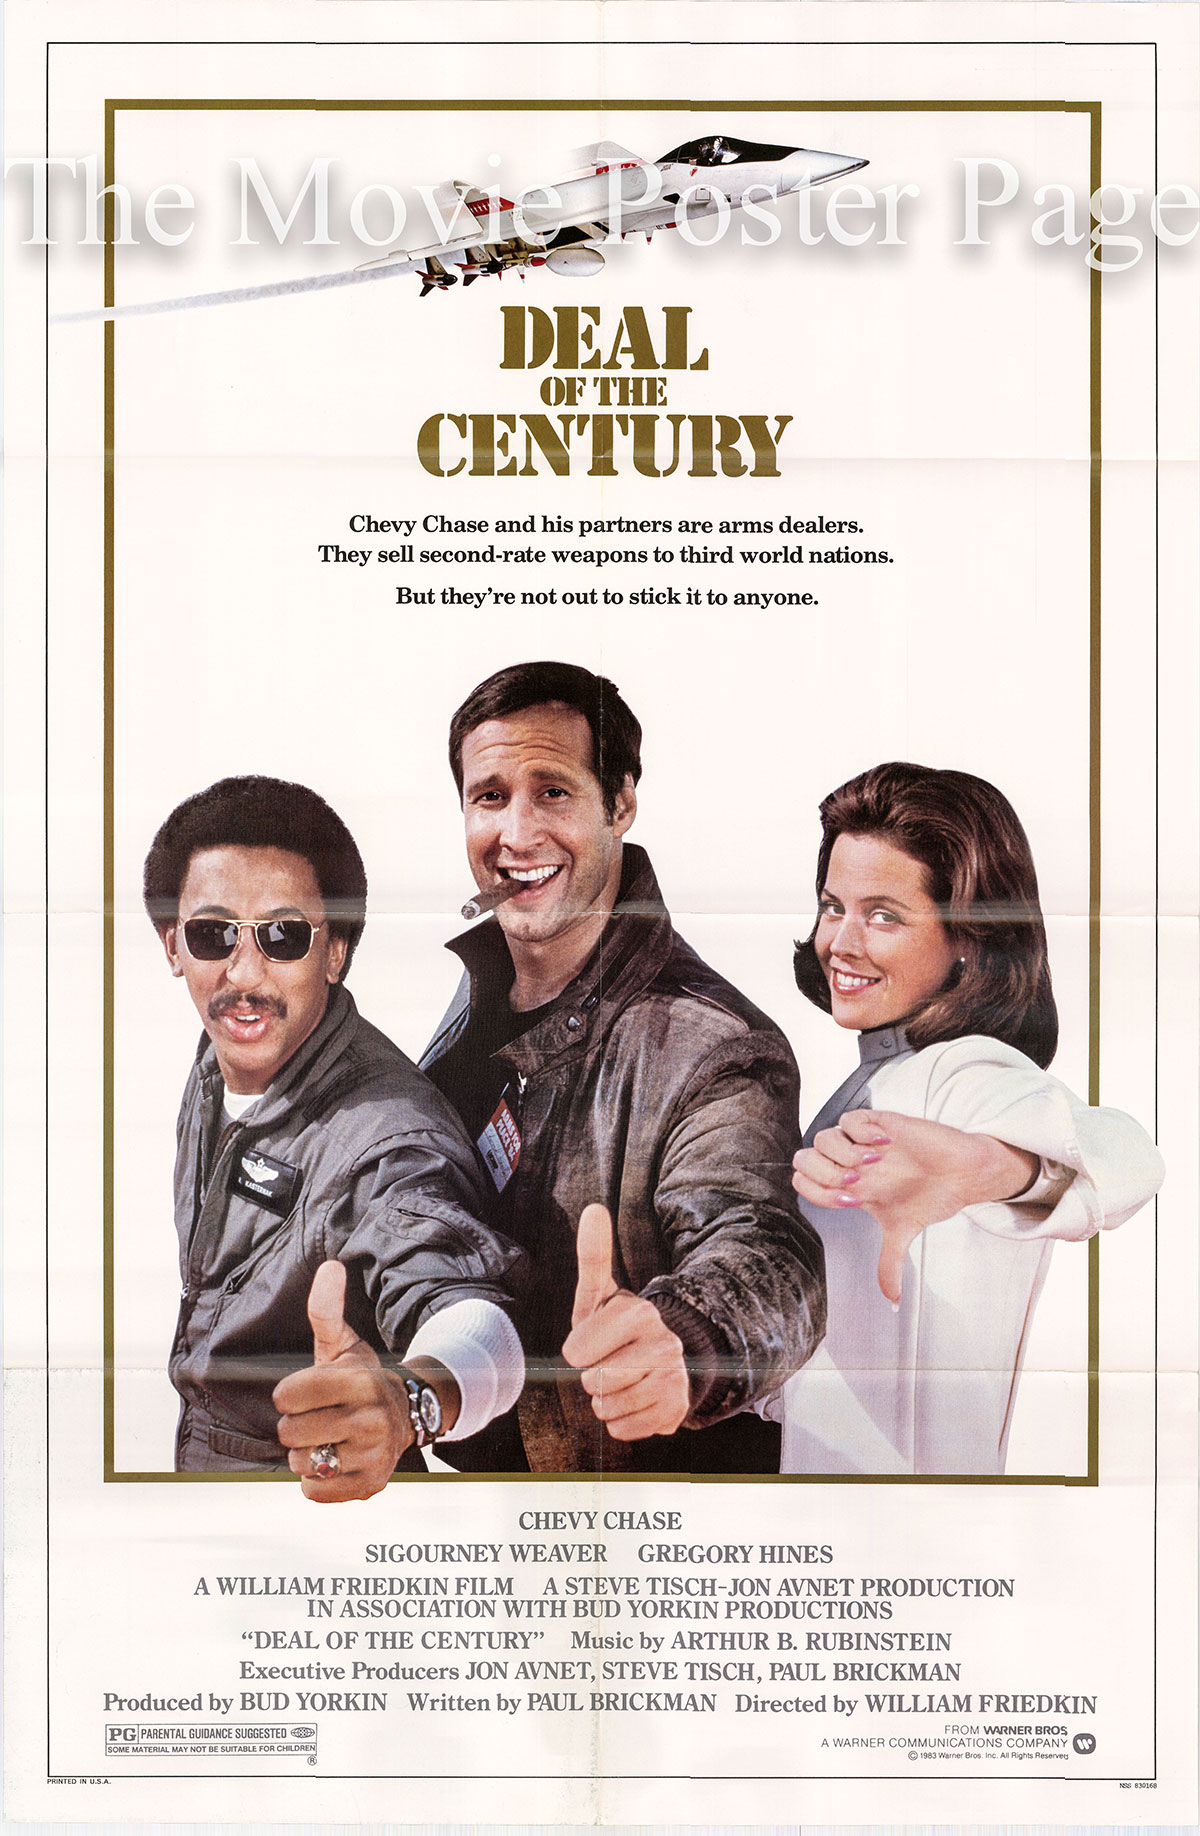 Pictured is a US one-sheet poster for the 1983 William Friedkin film Deal of the Century starry Chevy Chase.